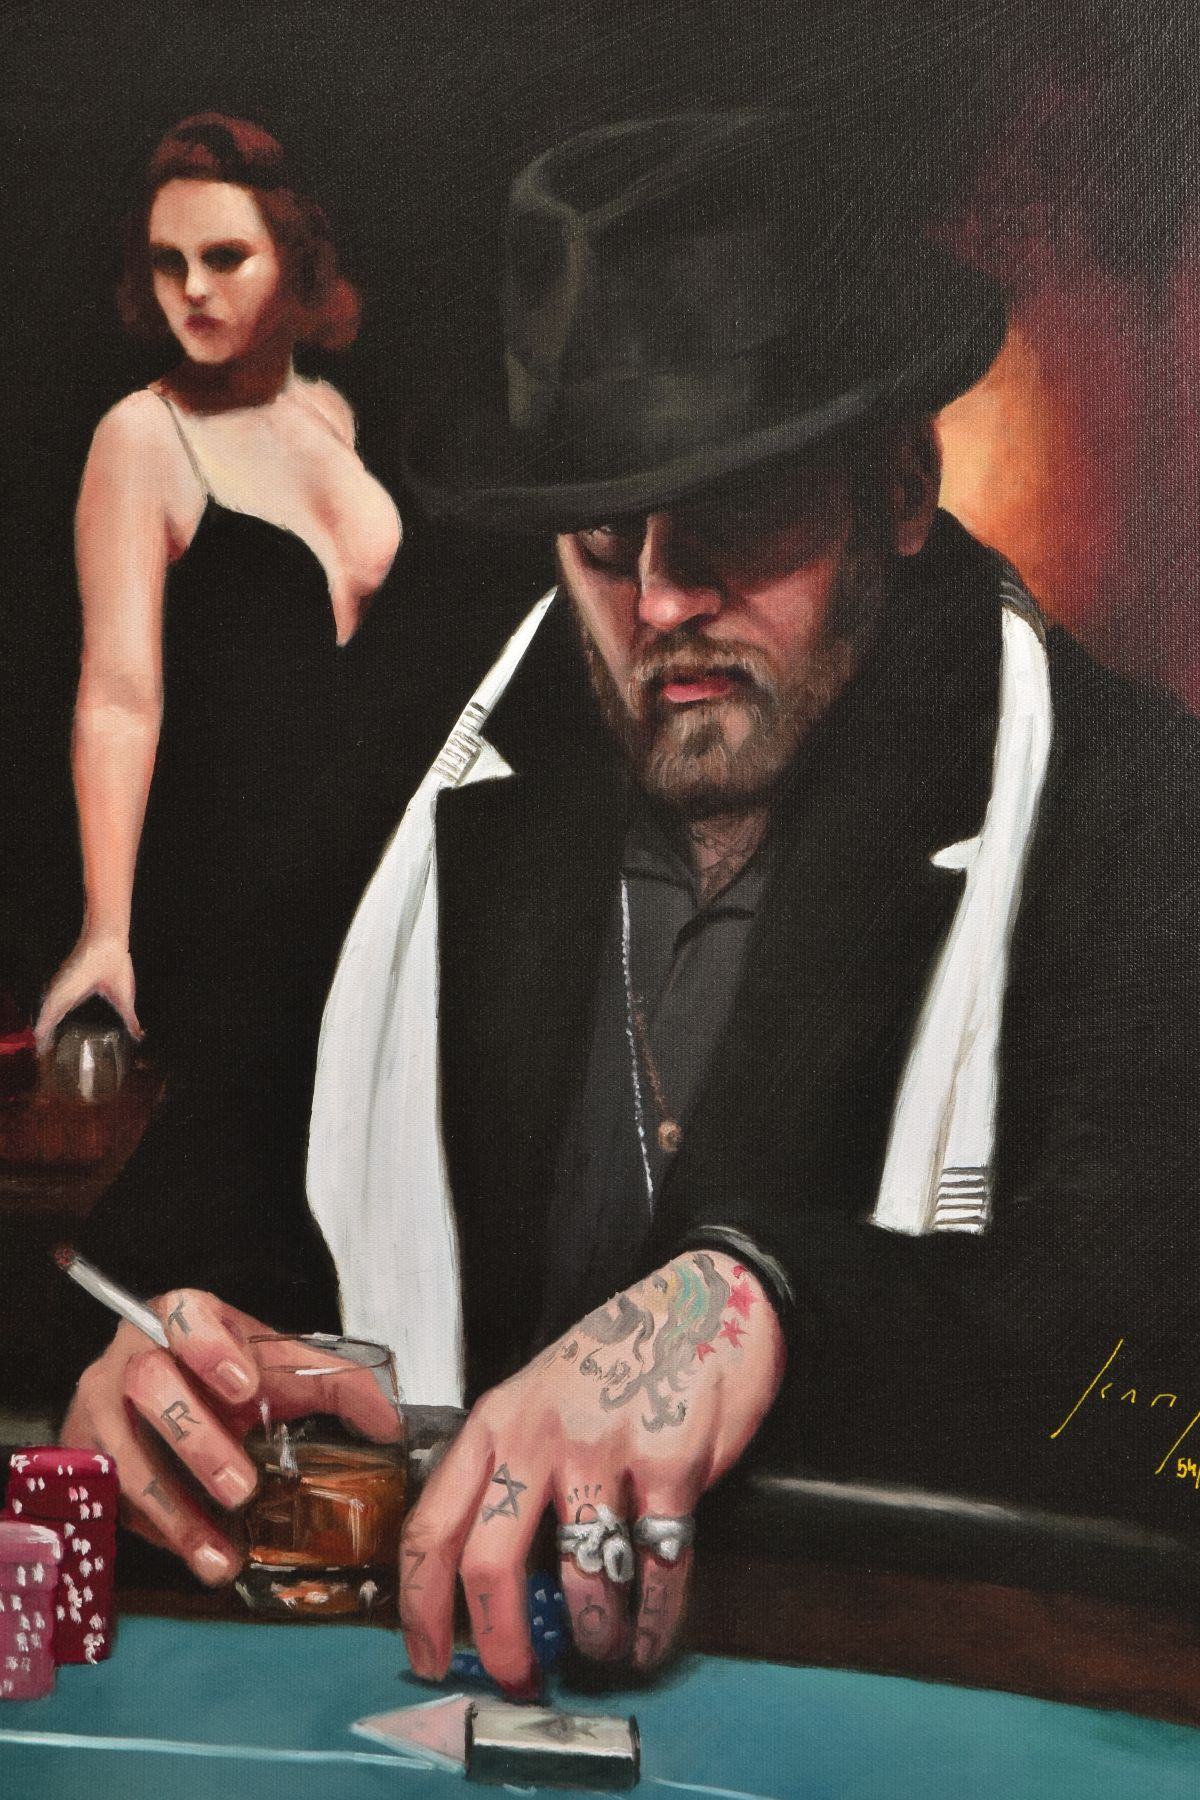 VINCENT KAMP (BRITISH CONTEMPORARY) 'NOT DONE YET' a limited edition print of a gambler in a - Image 2 of 7